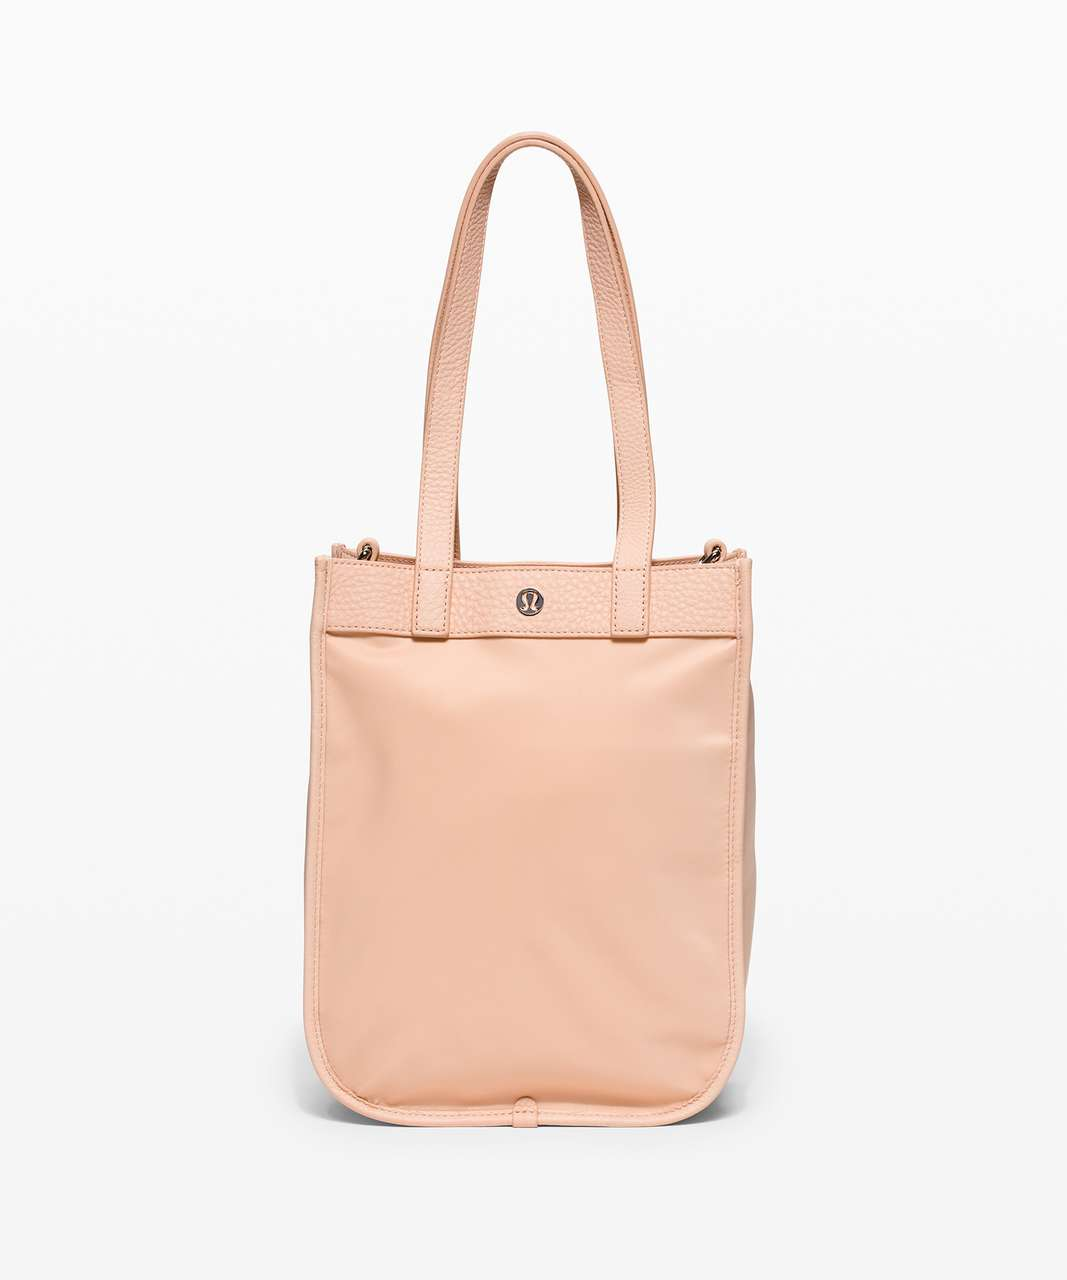 Lululemon Now And Always Tote Mini 8L - Misty Shell / Soft Sand